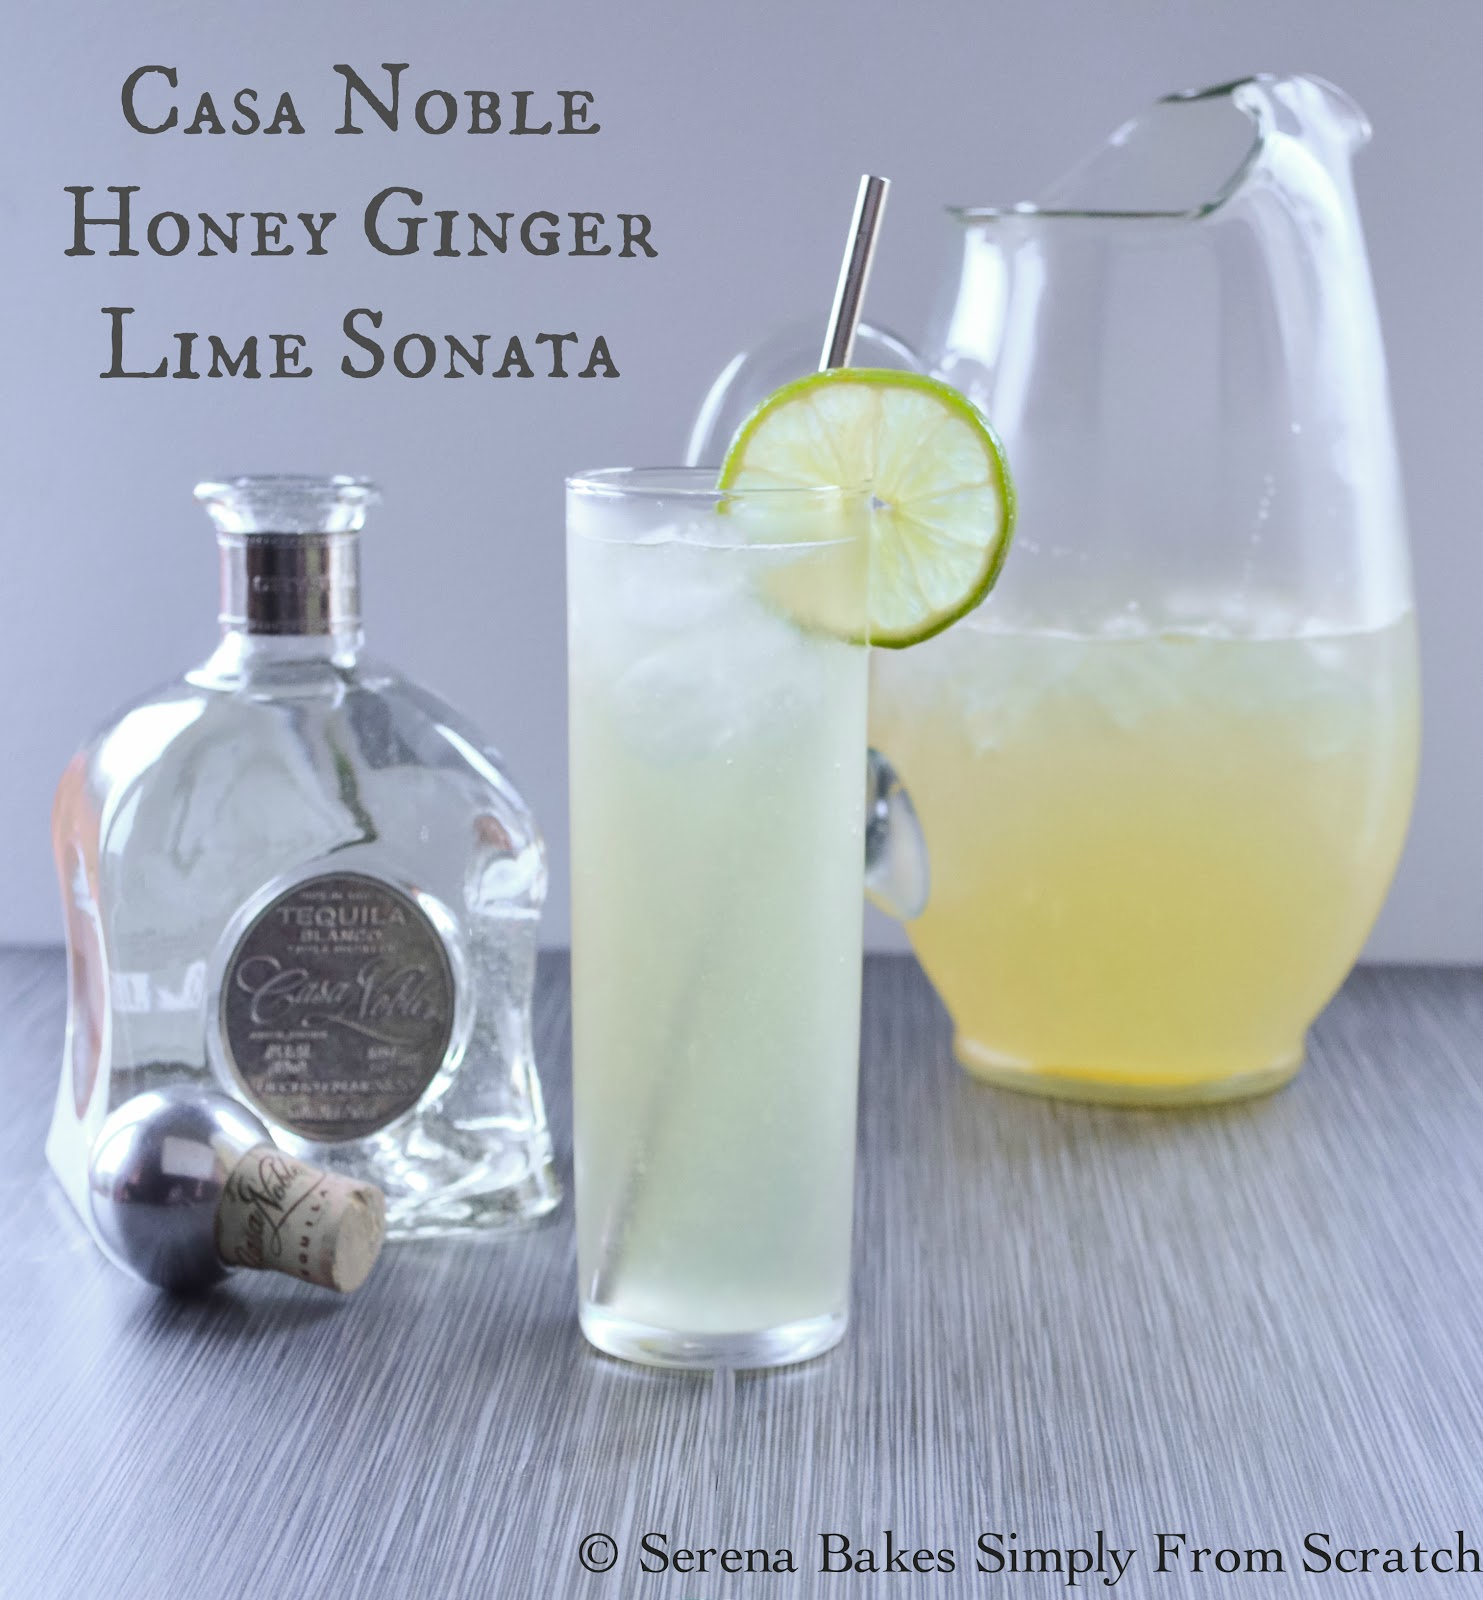 Casa Noble Honey Ginger Lime Sonata